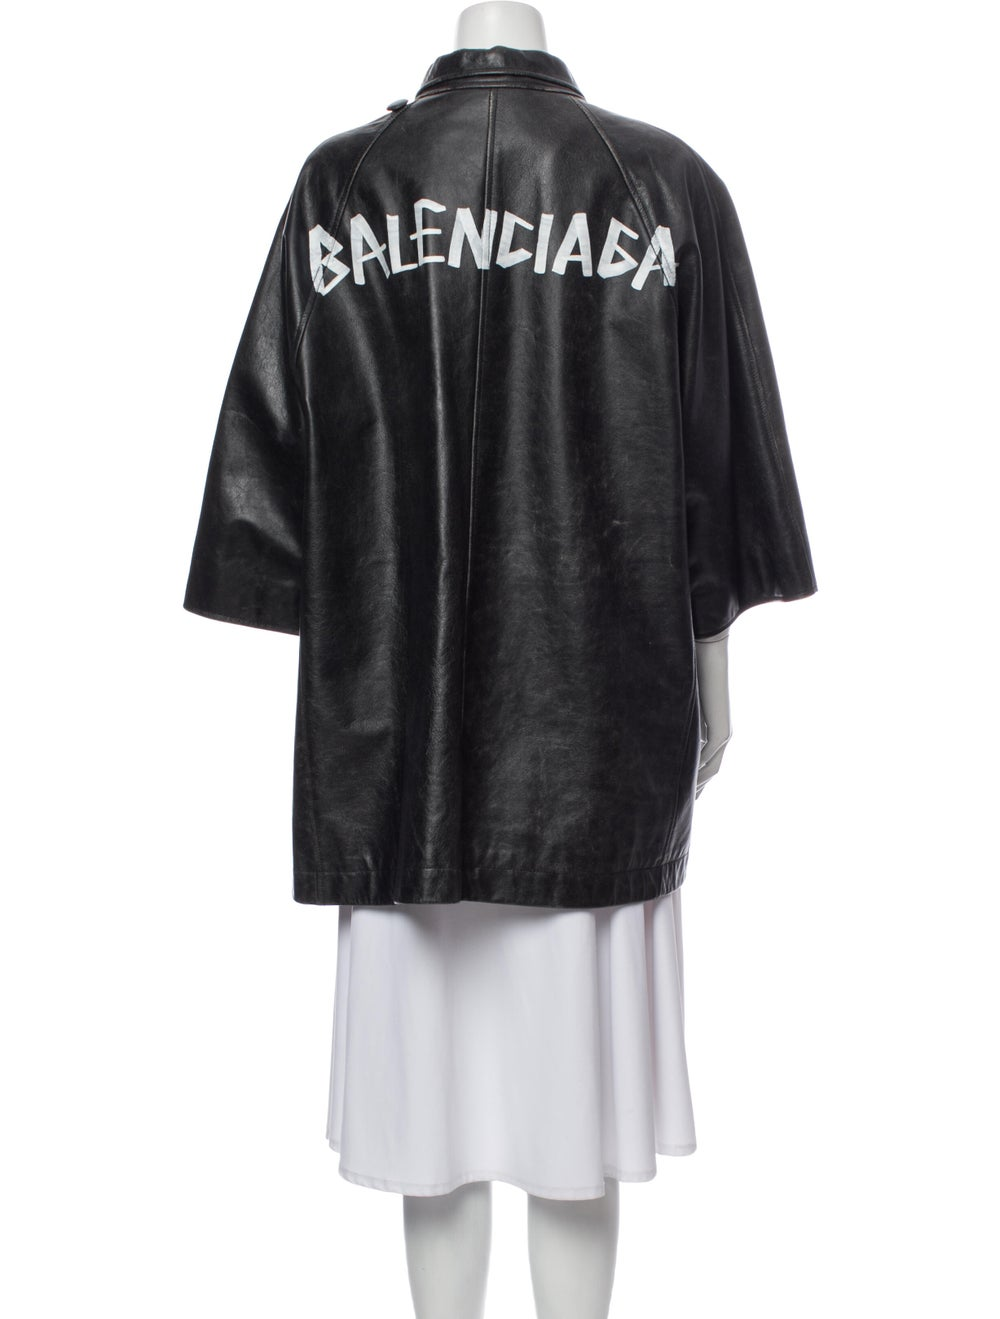 Balenciaga Leather Jacket Black - image 3